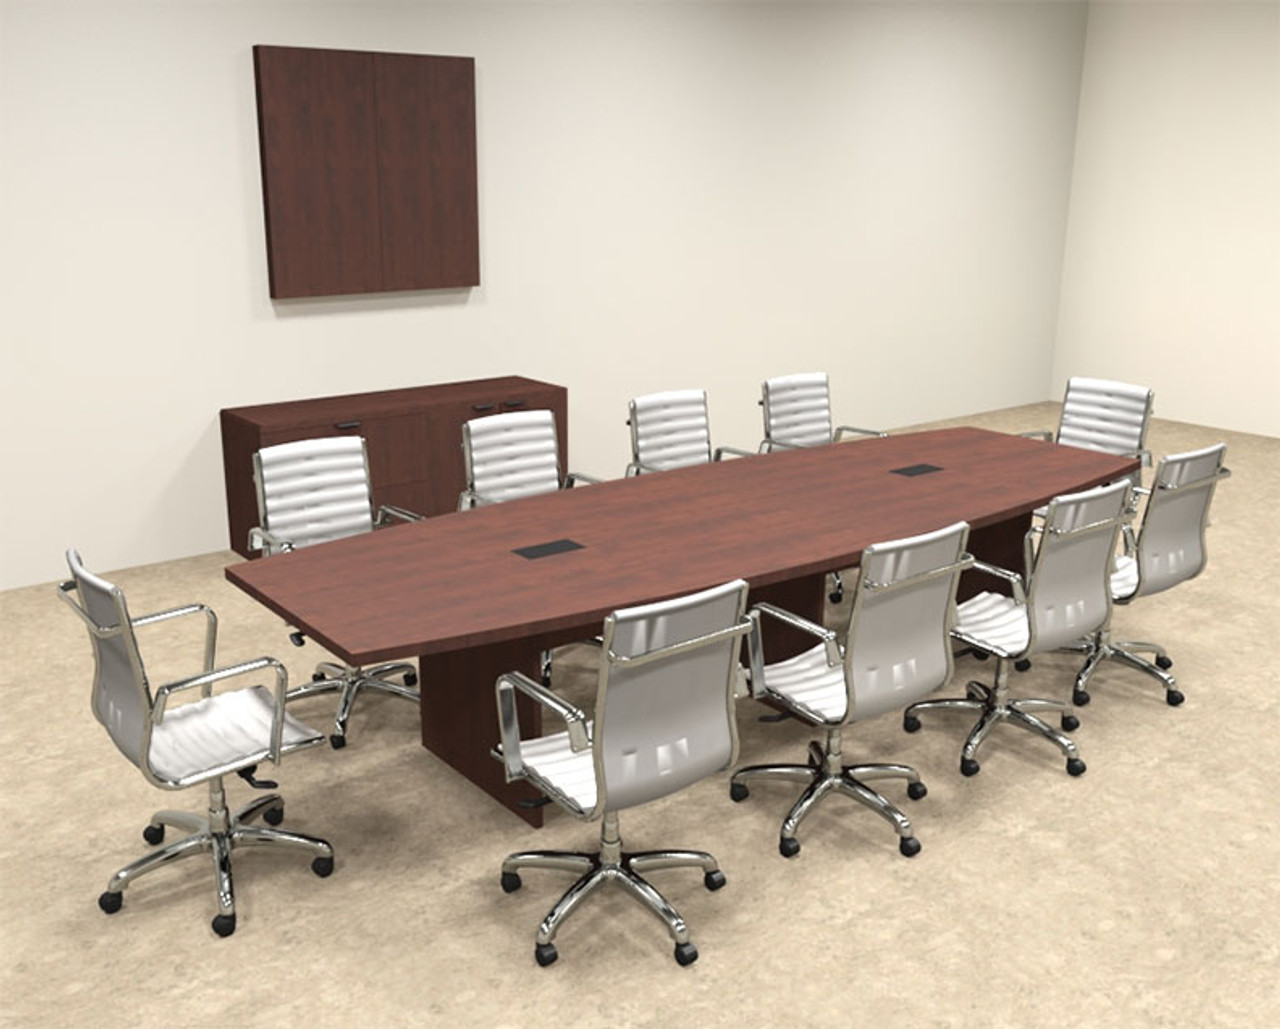 Modern Boat Shapedd Feet Conference Table OFCONC HO - 12 foot conference table